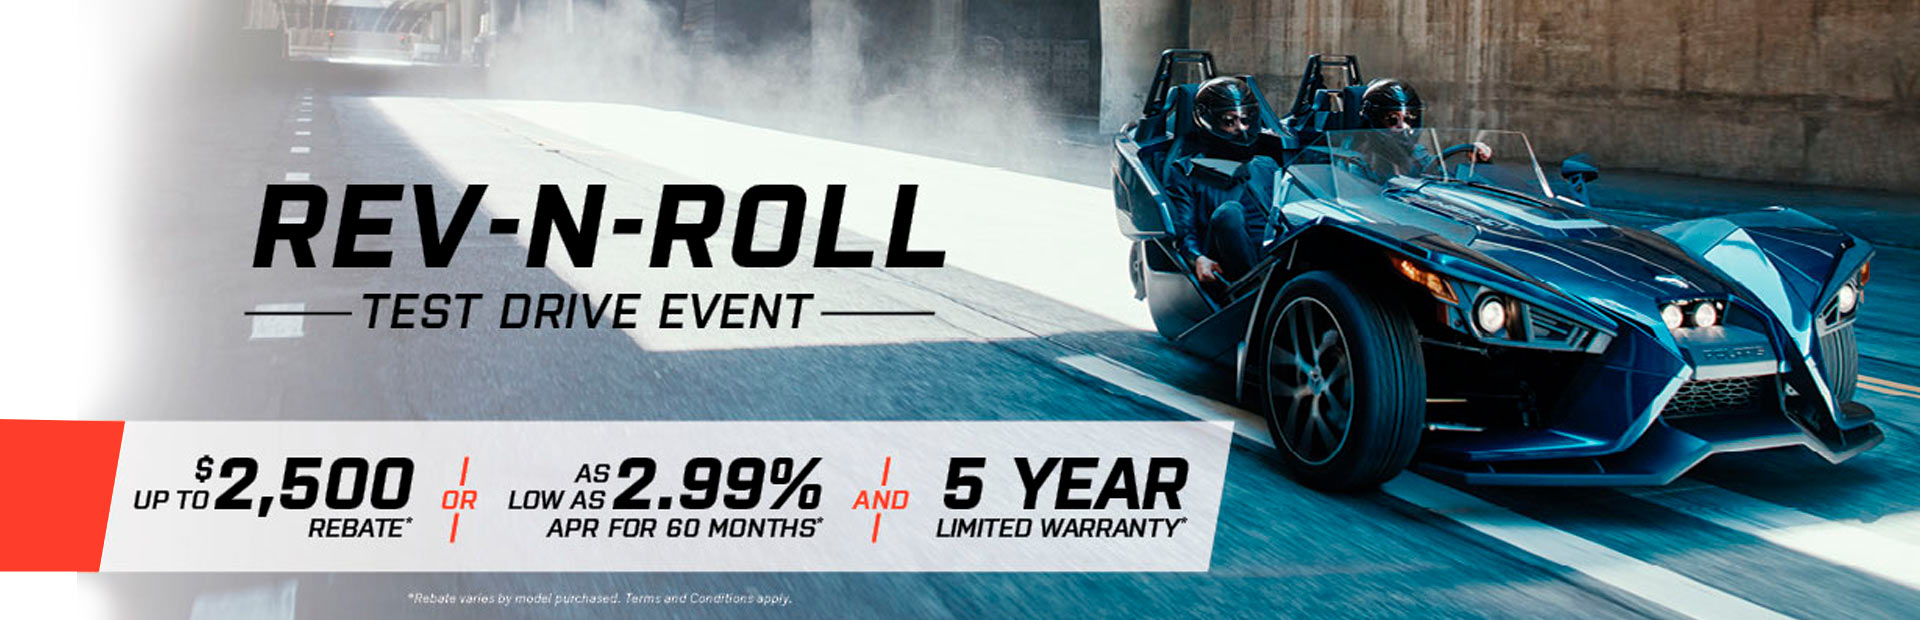 Slingshot: Rev-N-Roll Test Drive Event